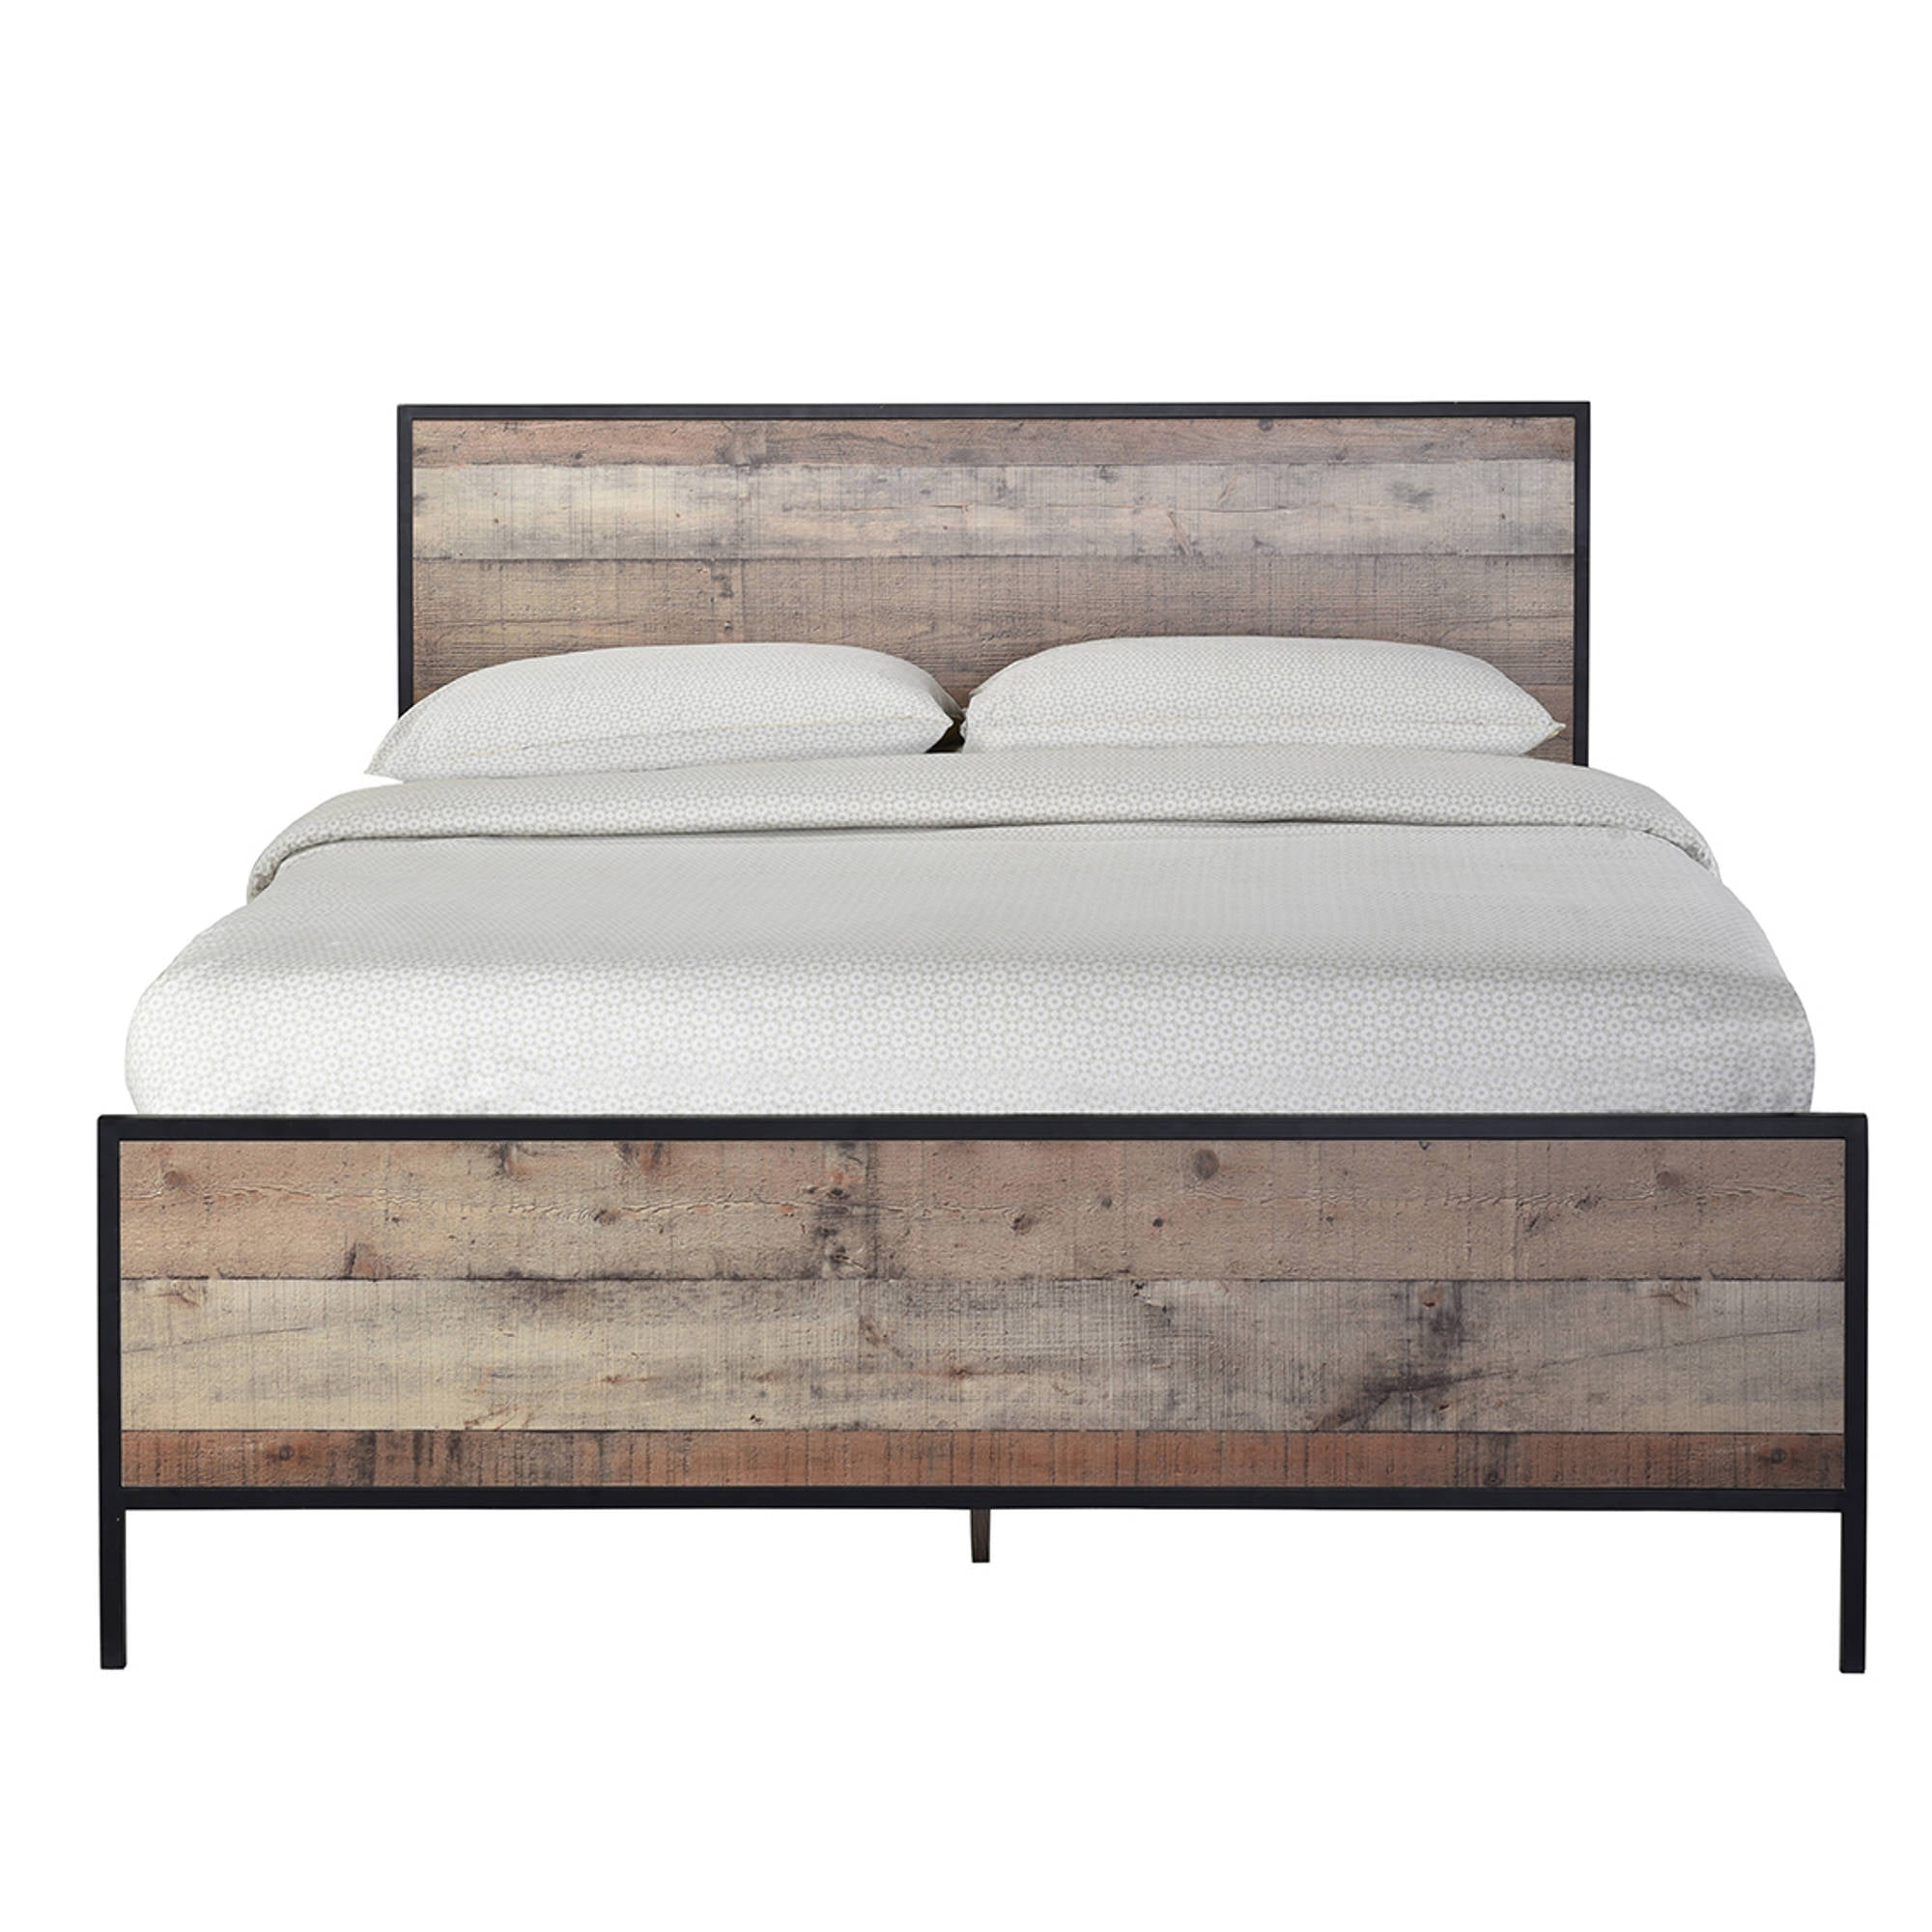 Aske Double Bed - Ezzo